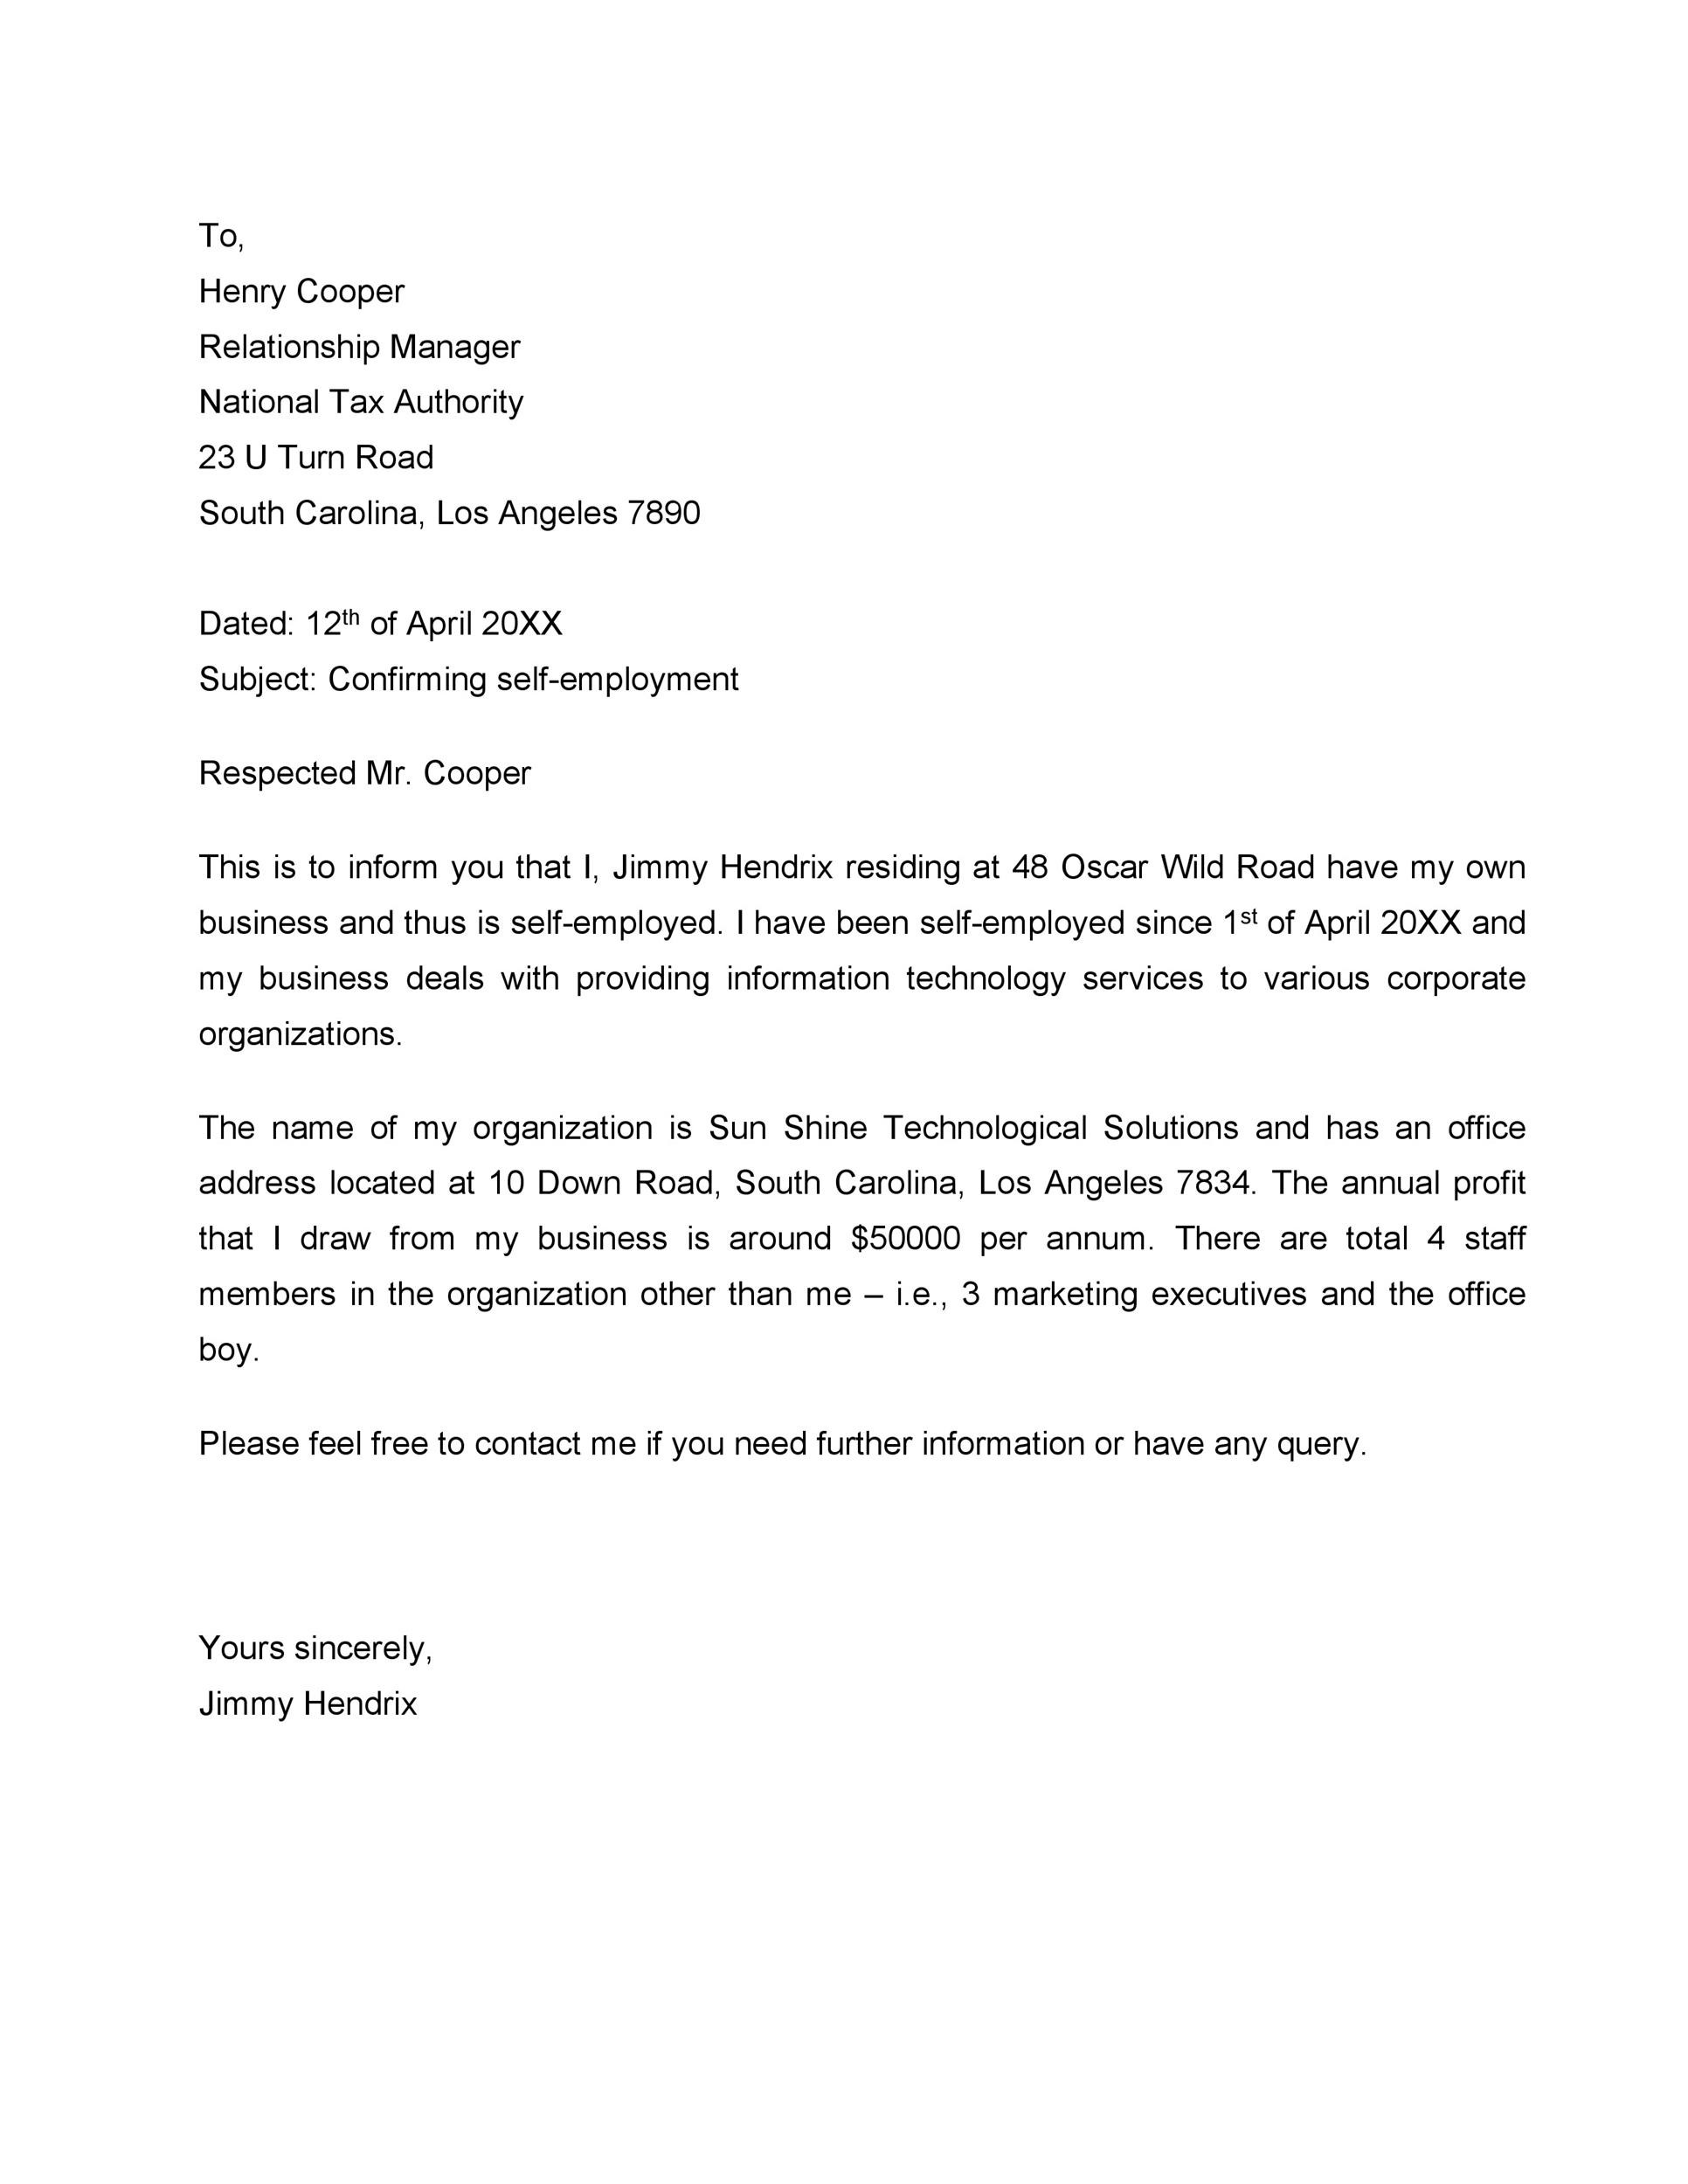 Free Proof of Employment Letter Template 38